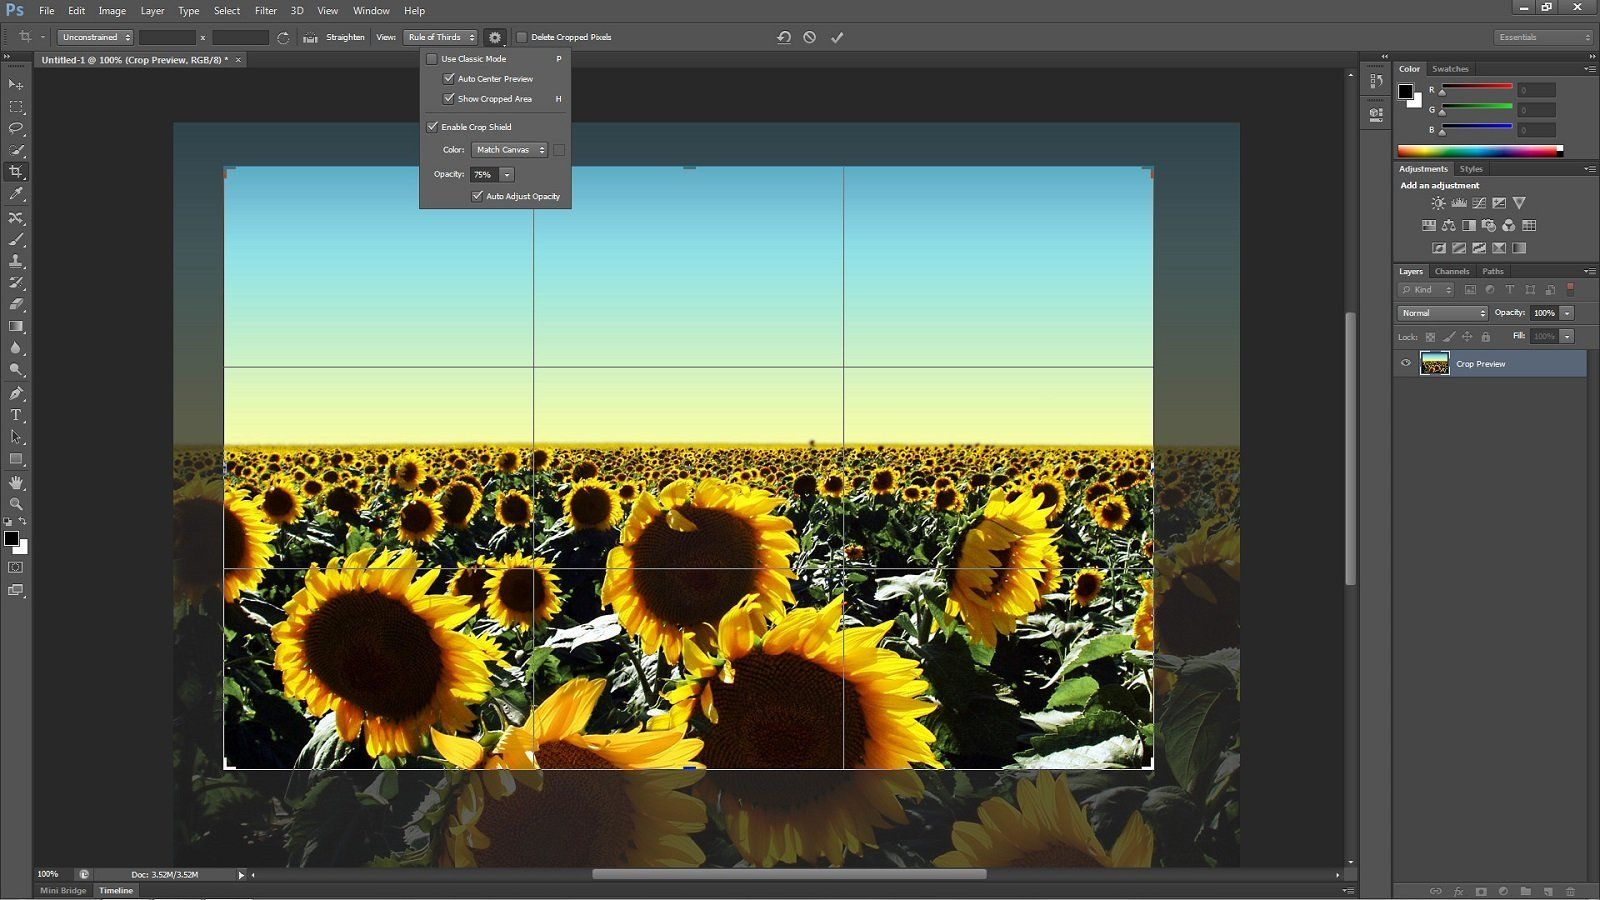 Adobe-Photoshop-CS6-Crop-Tool